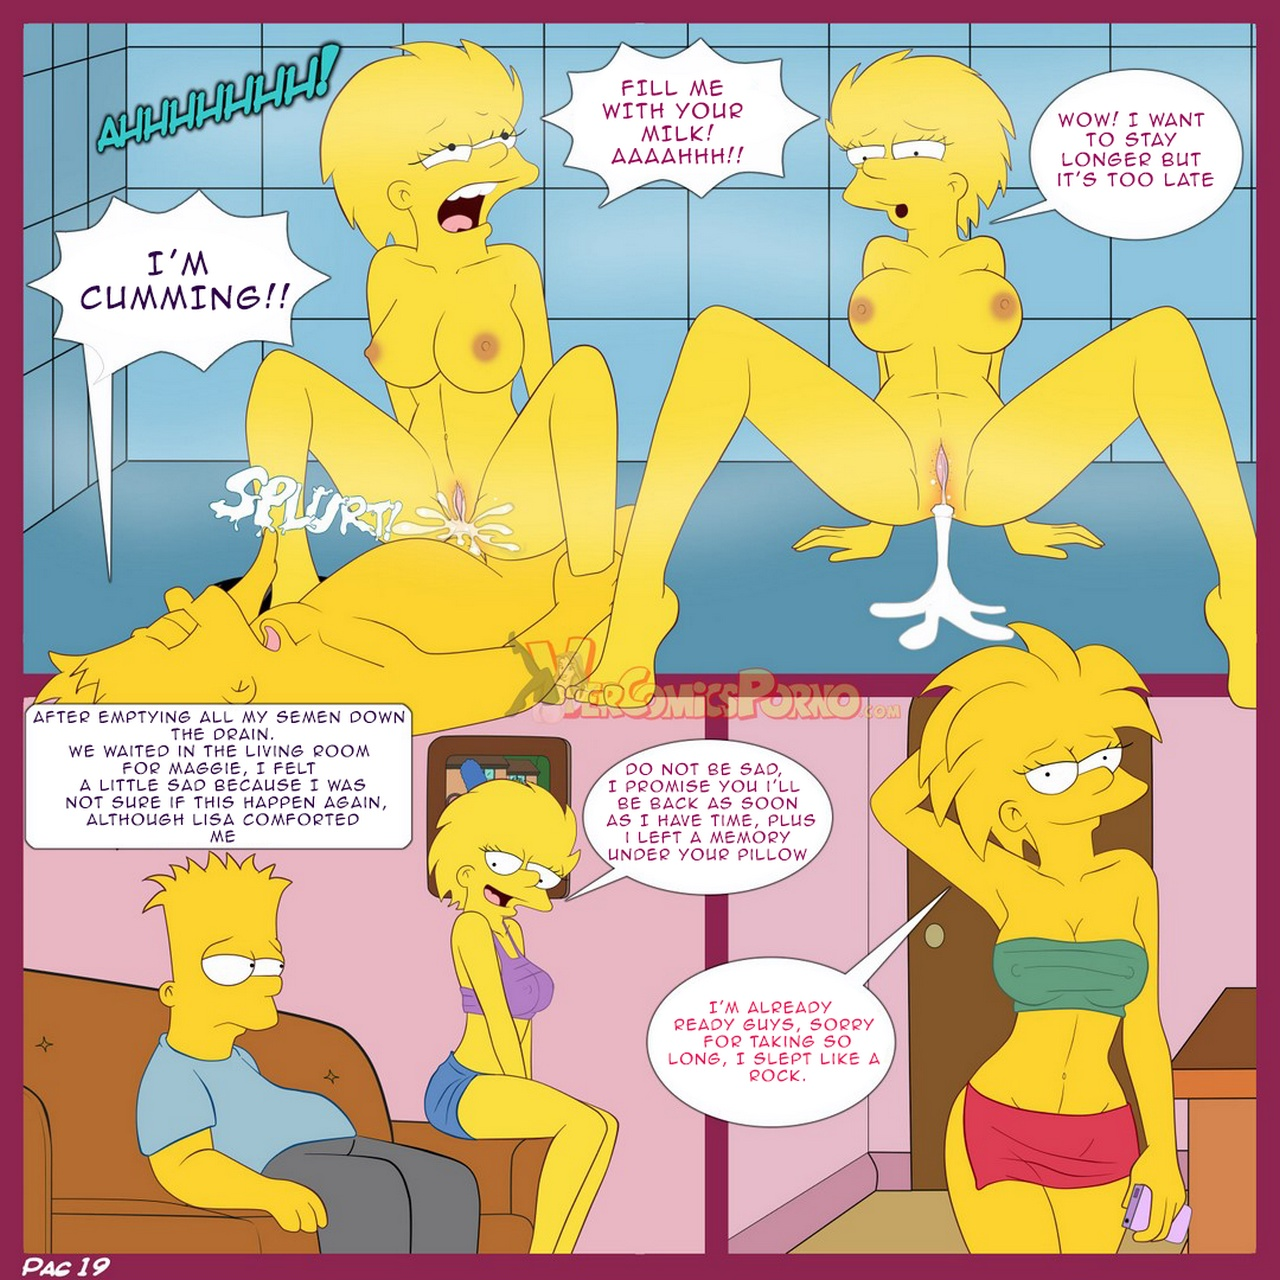 The Simpsons 1 - A Visit From The Sisterch - part 2